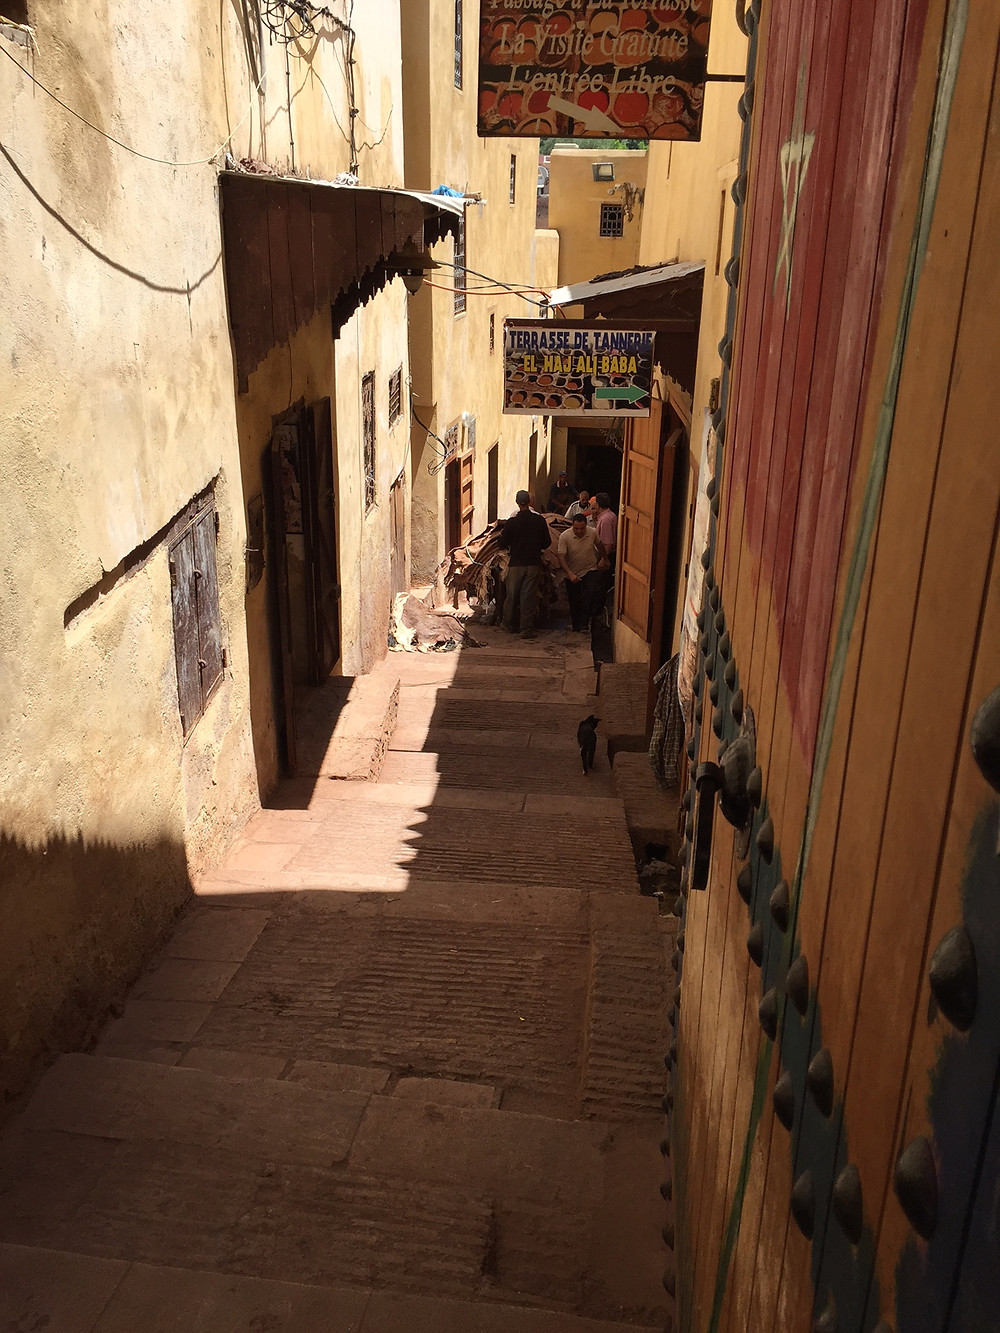 Walking the many alleys of Fez.  Elli Travel Group is a New York Travel Agency based in Larchmont New York. Proud members of Virtuoso, Rosewood Elite and Starwood Luxury Privileges.